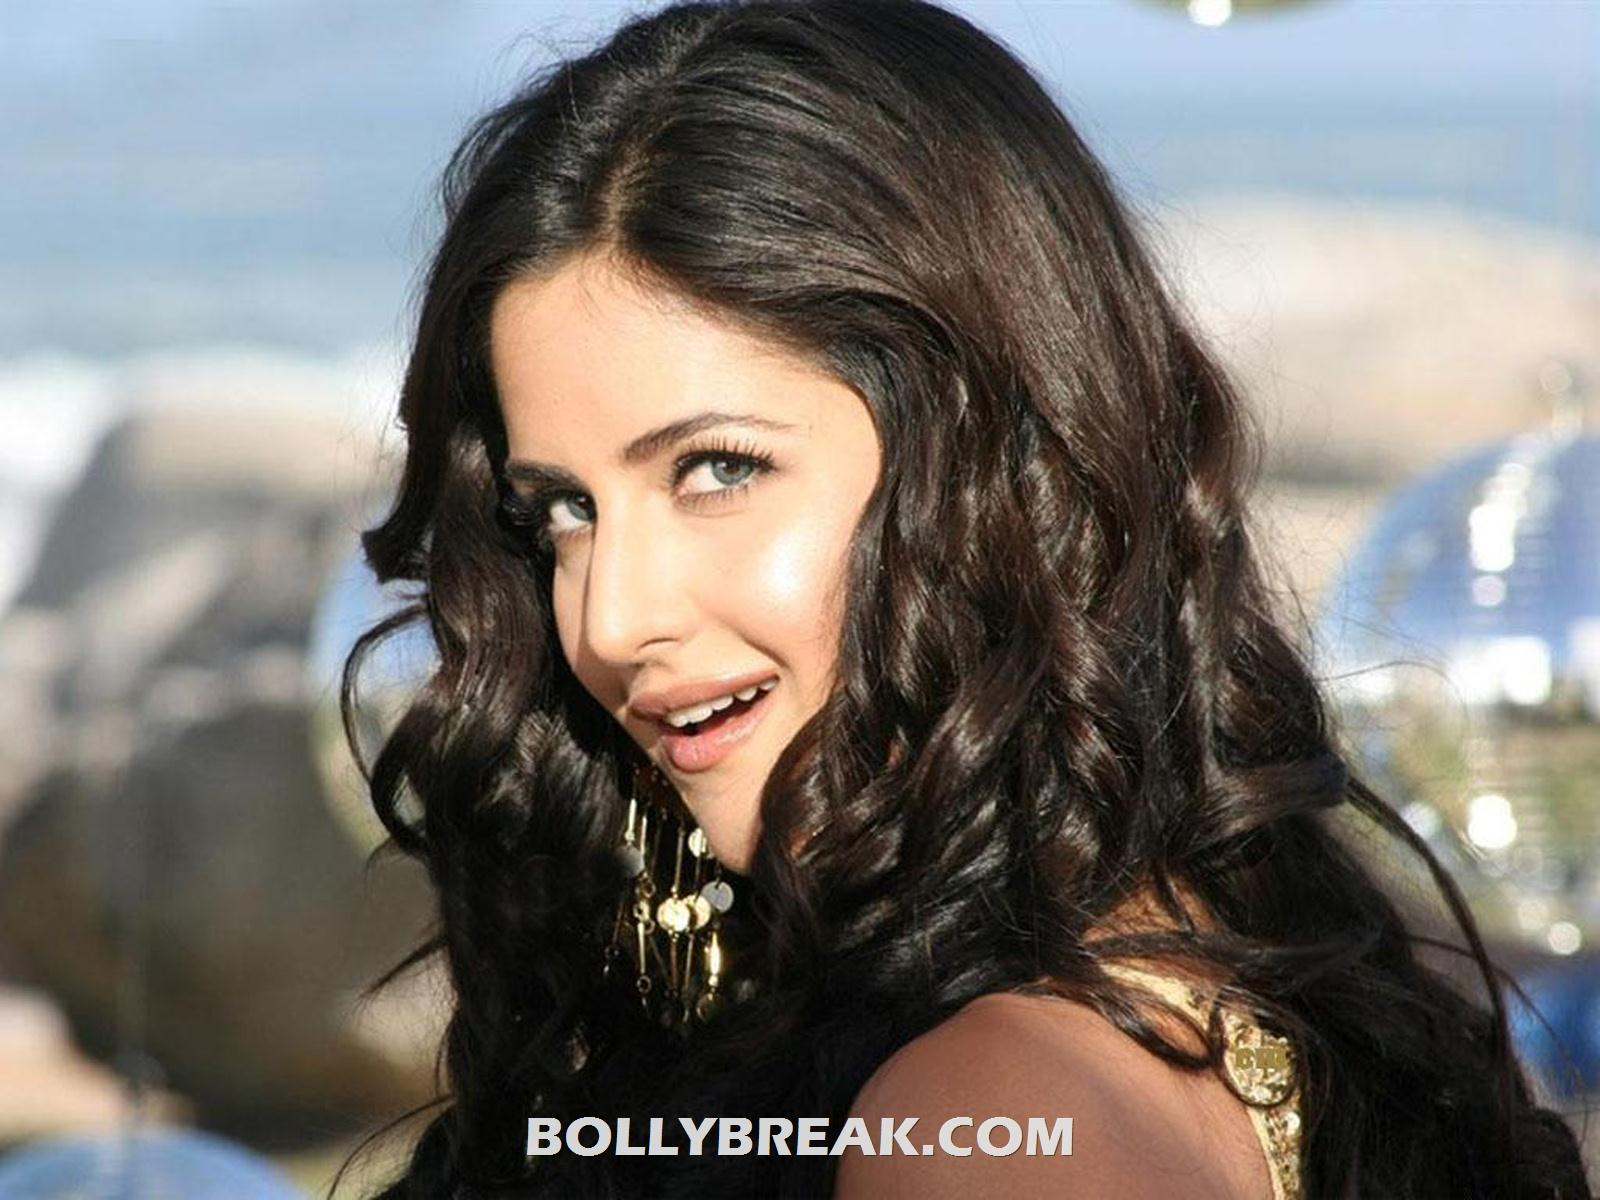 Katrina Kaif Hd Wallpaper - Face Close up - Katrina Kaif Hd Wallpapers - Happy Birthday 2012